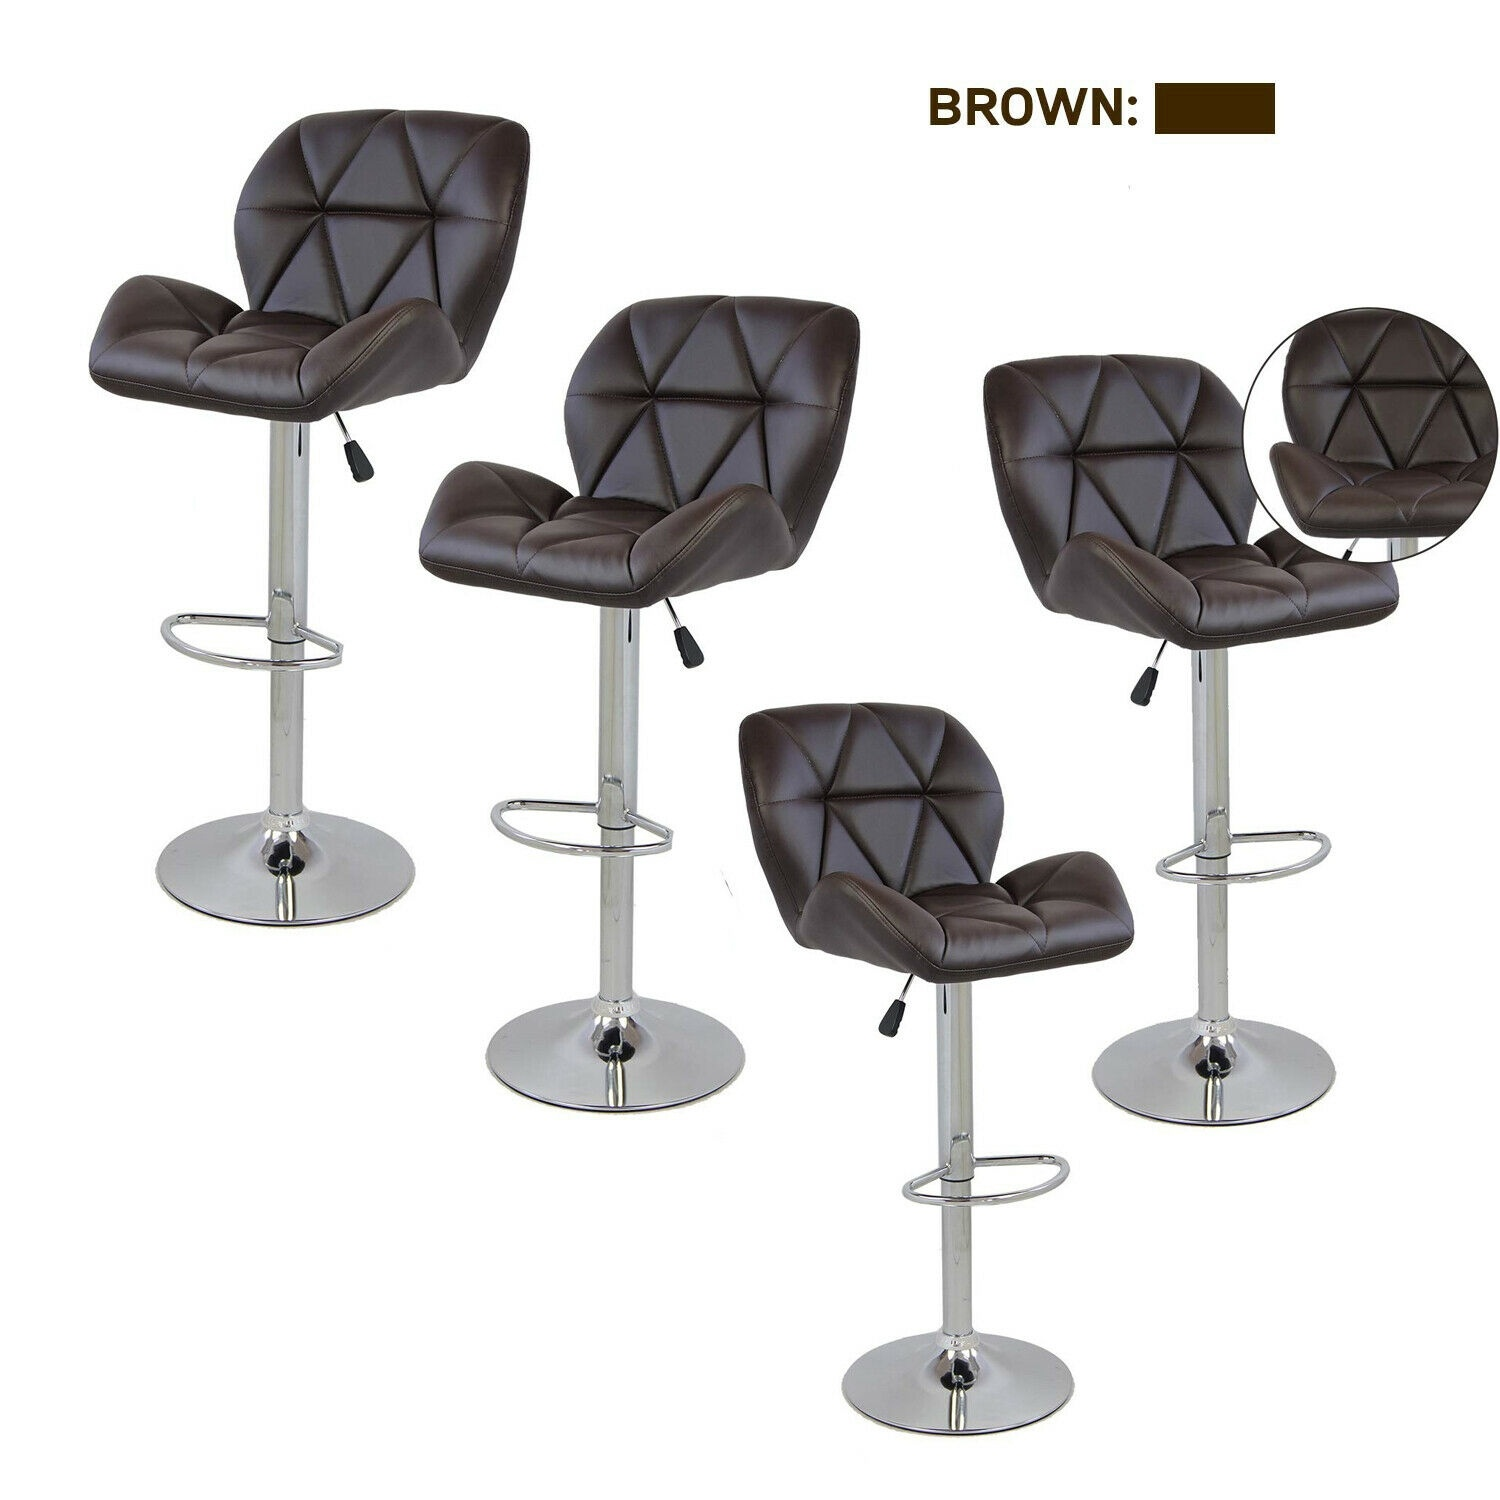 Set Of 4 Adjustable Bar Stools PU Leather Countertop Swivel Chair Dining Bistro